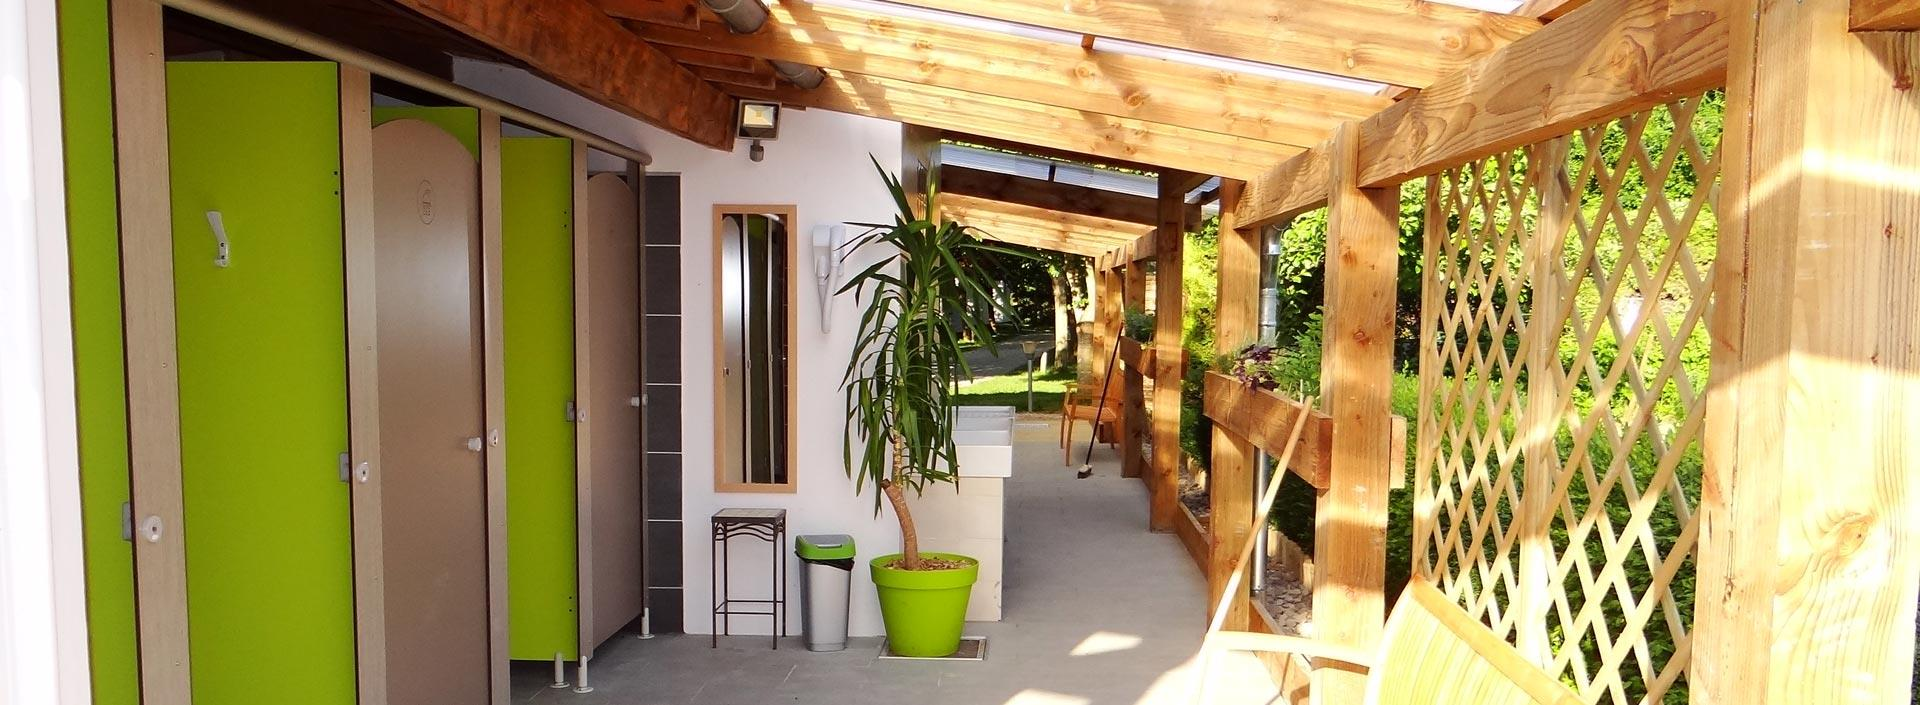 Camping les Cerisiers, Compeyre, Aveyron